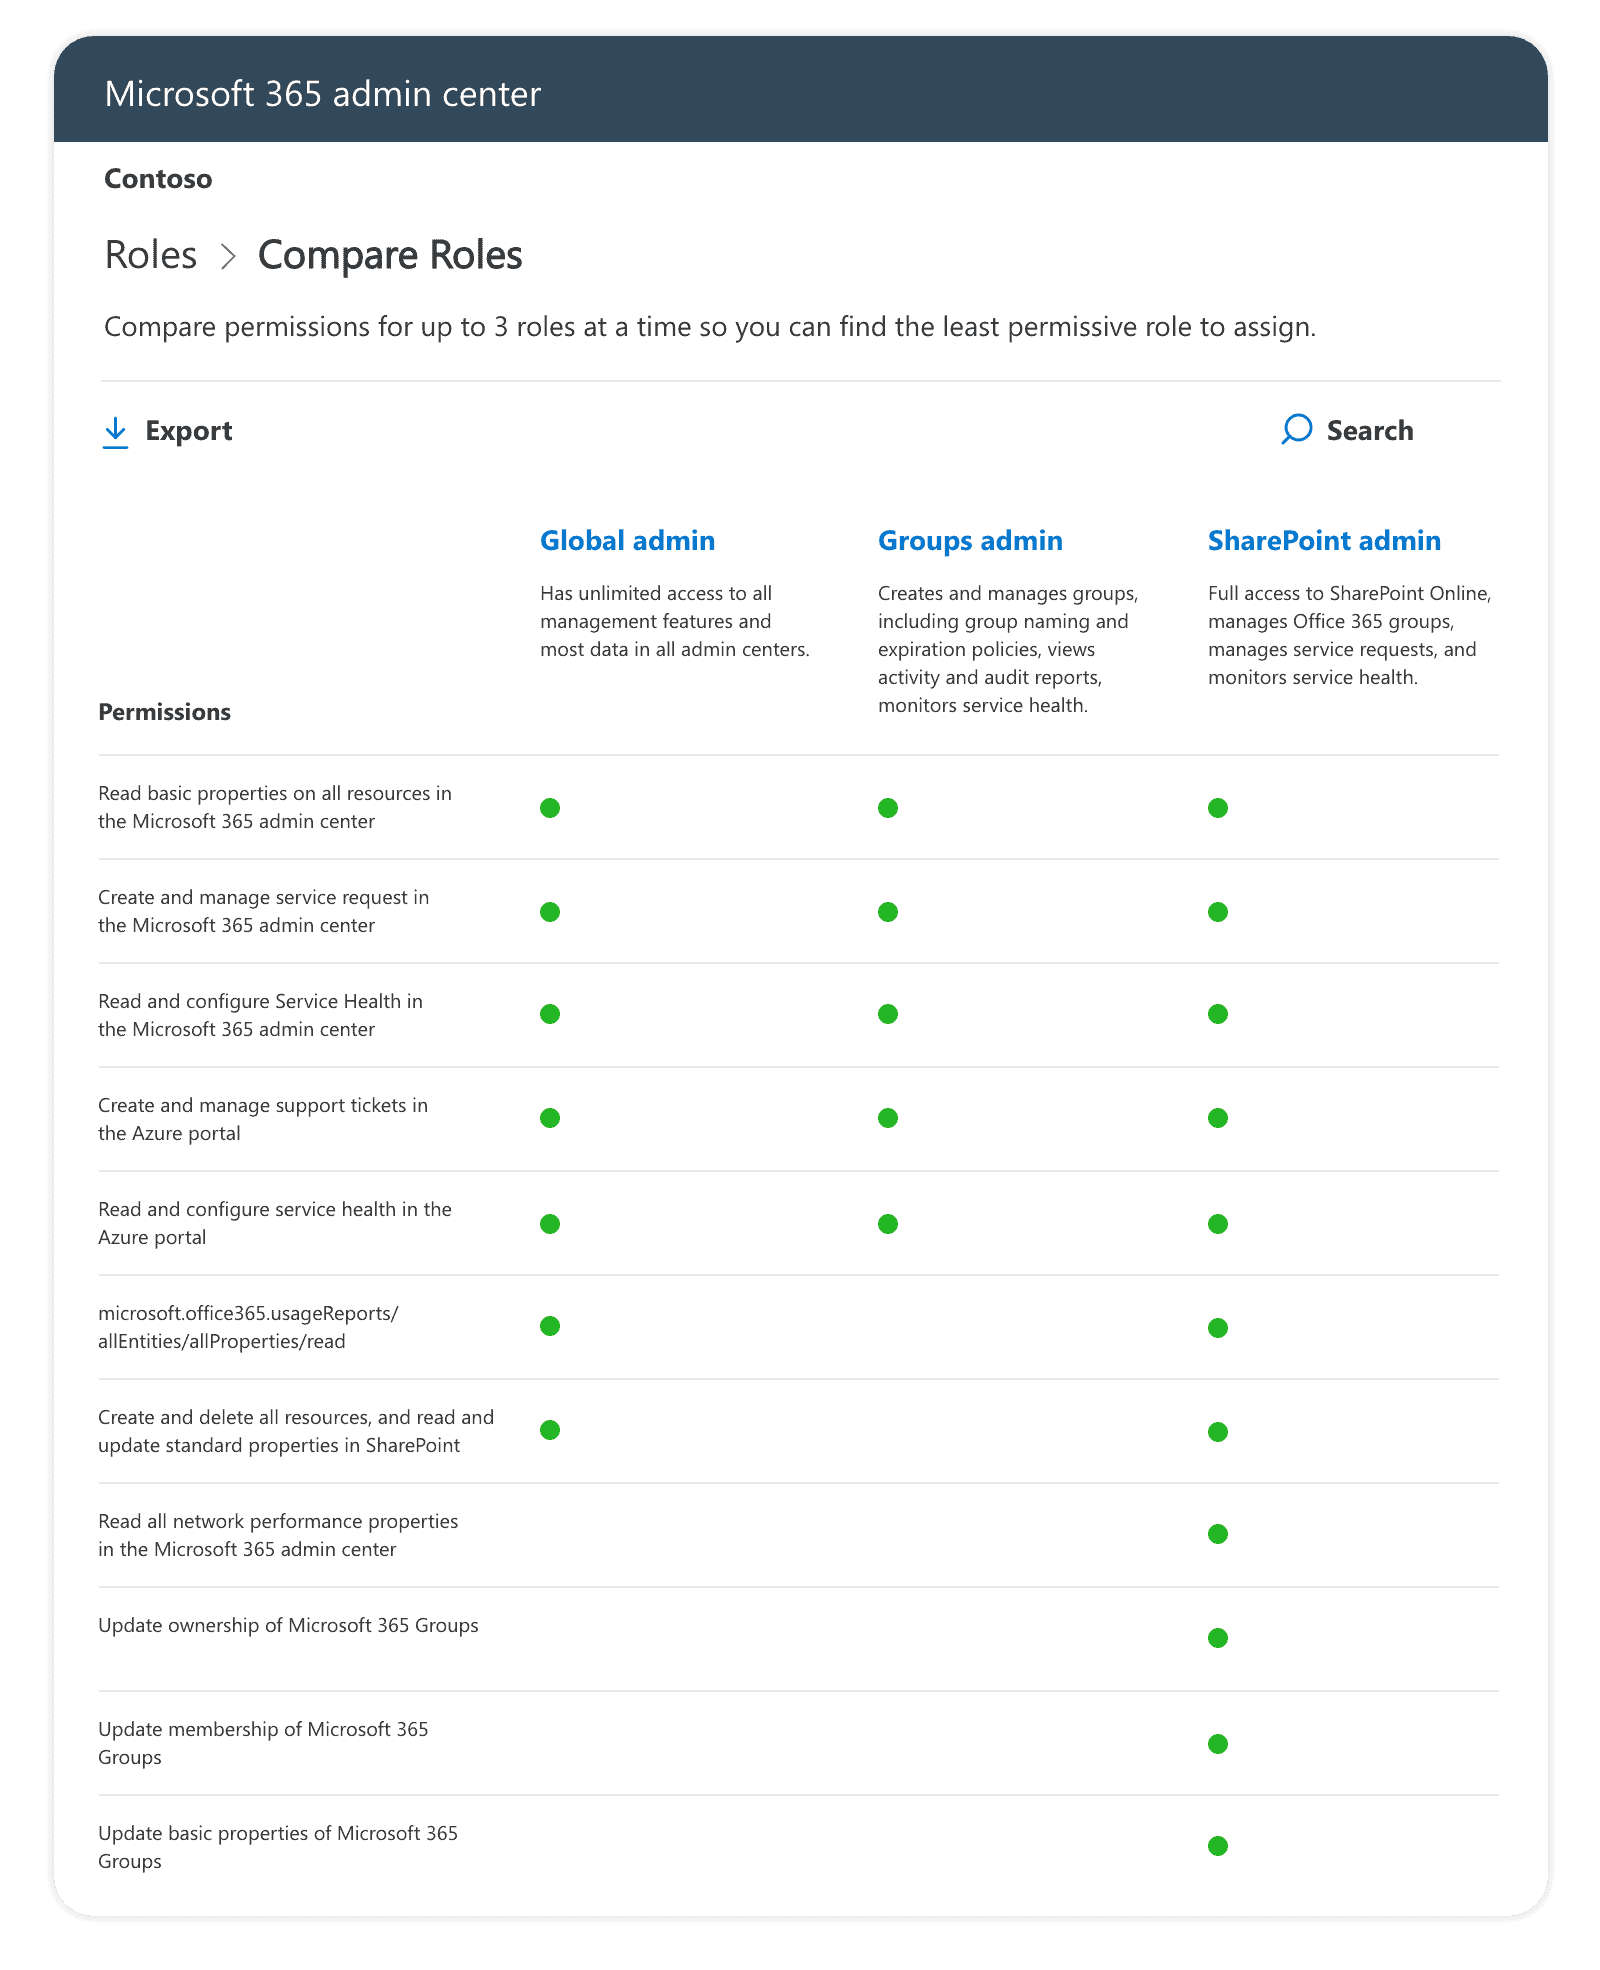 Compare roles in Microsoft 365 admin center